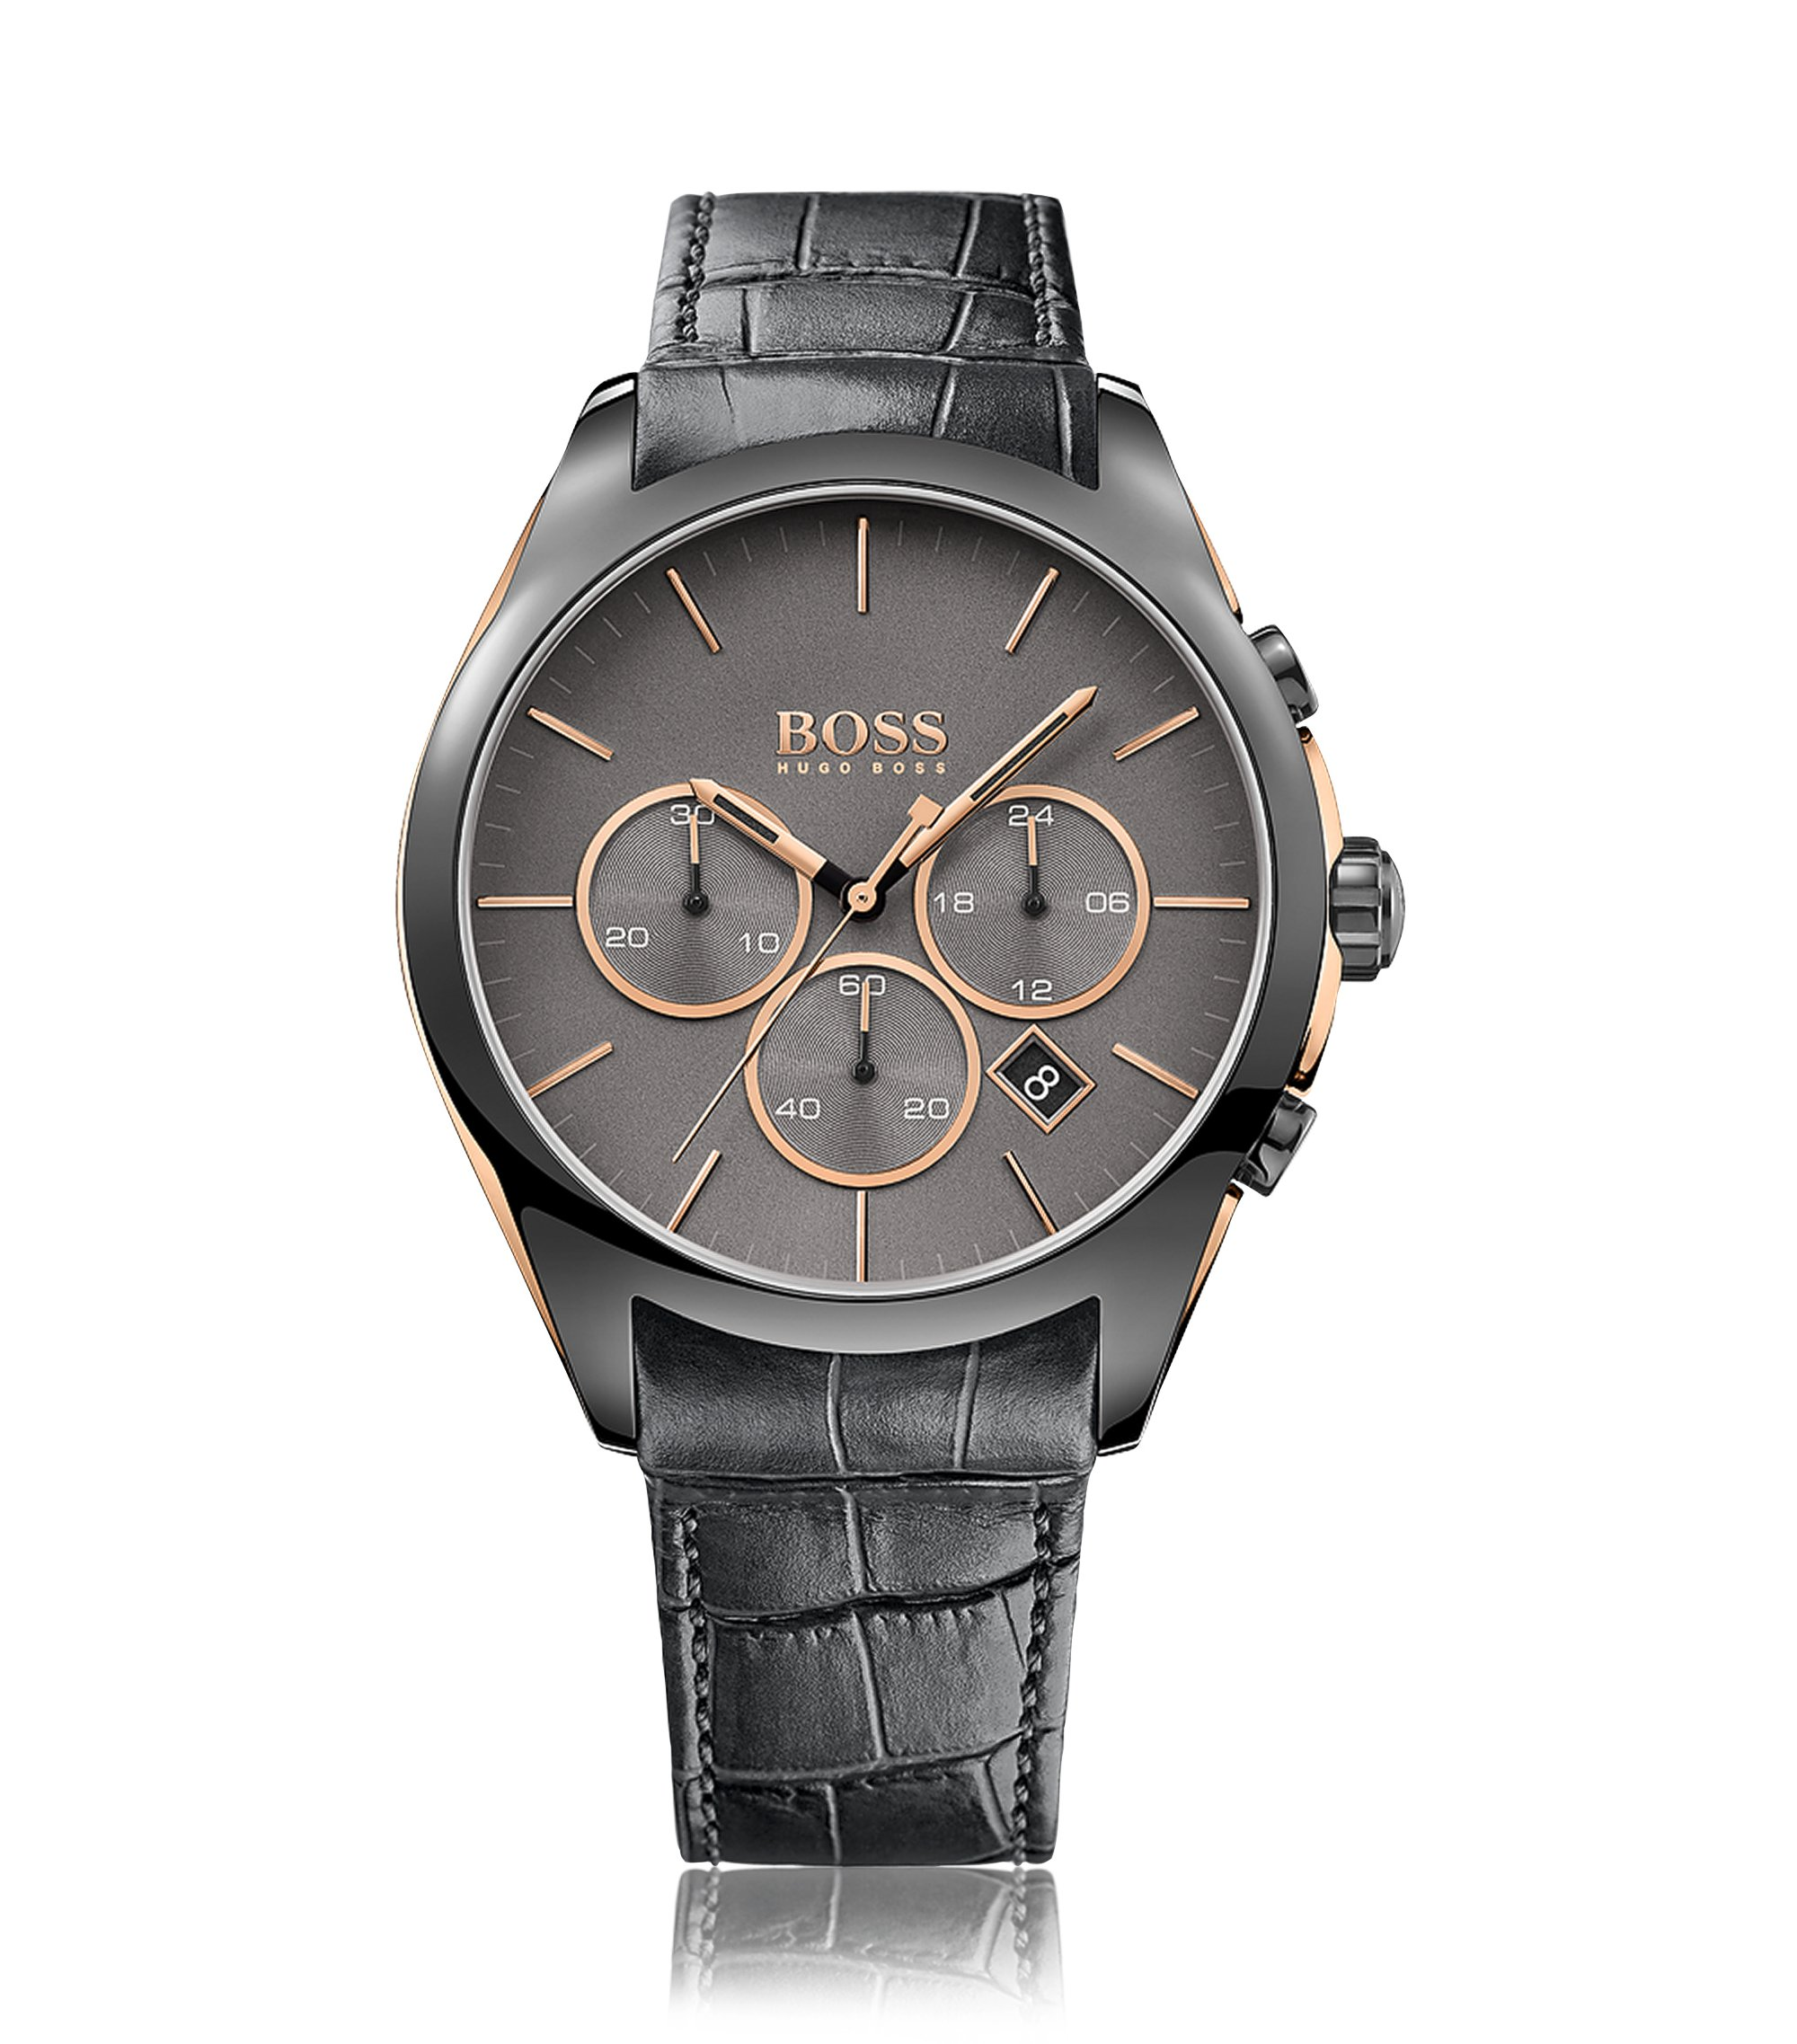 Onyx, Leather Chronograph Watch | 1513366, Assorted-Pre-Pack